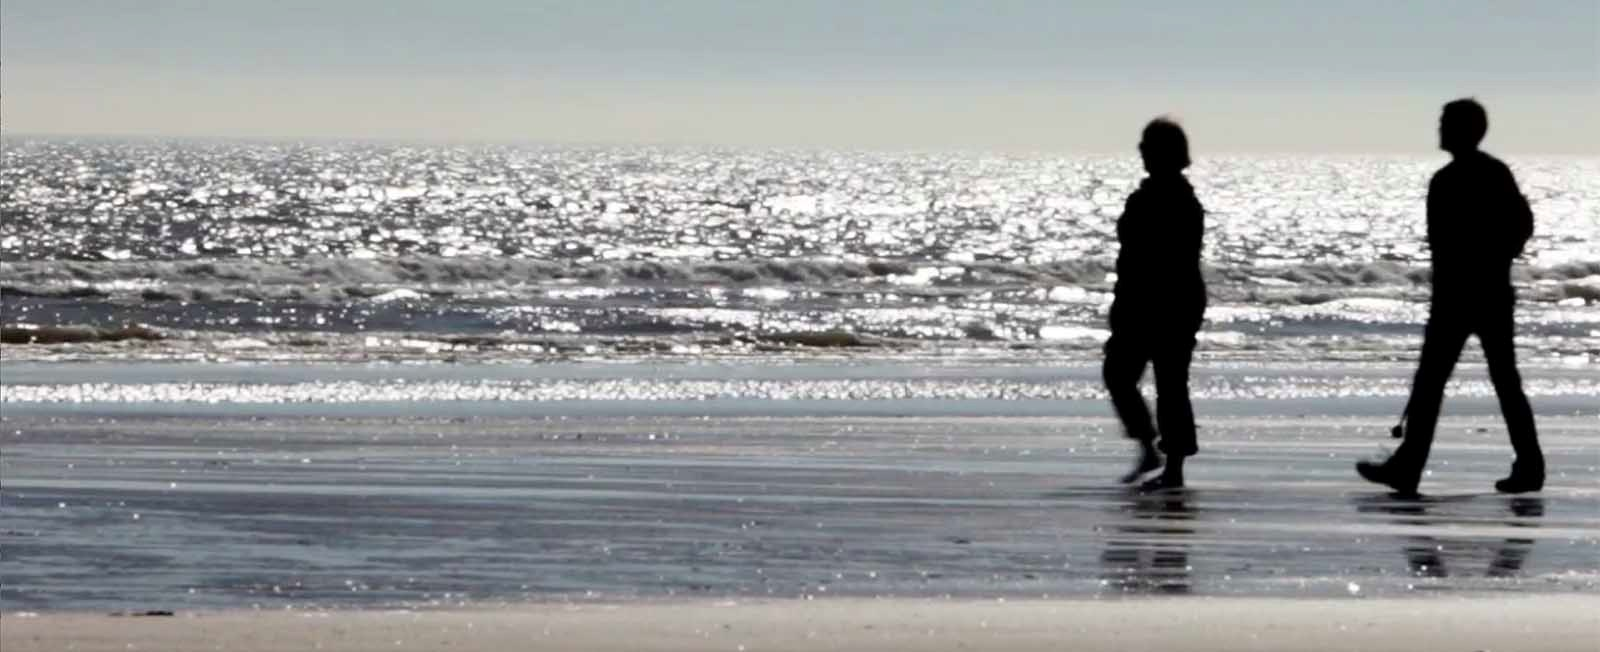 No matter what the season, it's a great time of year for a walk on the beach!